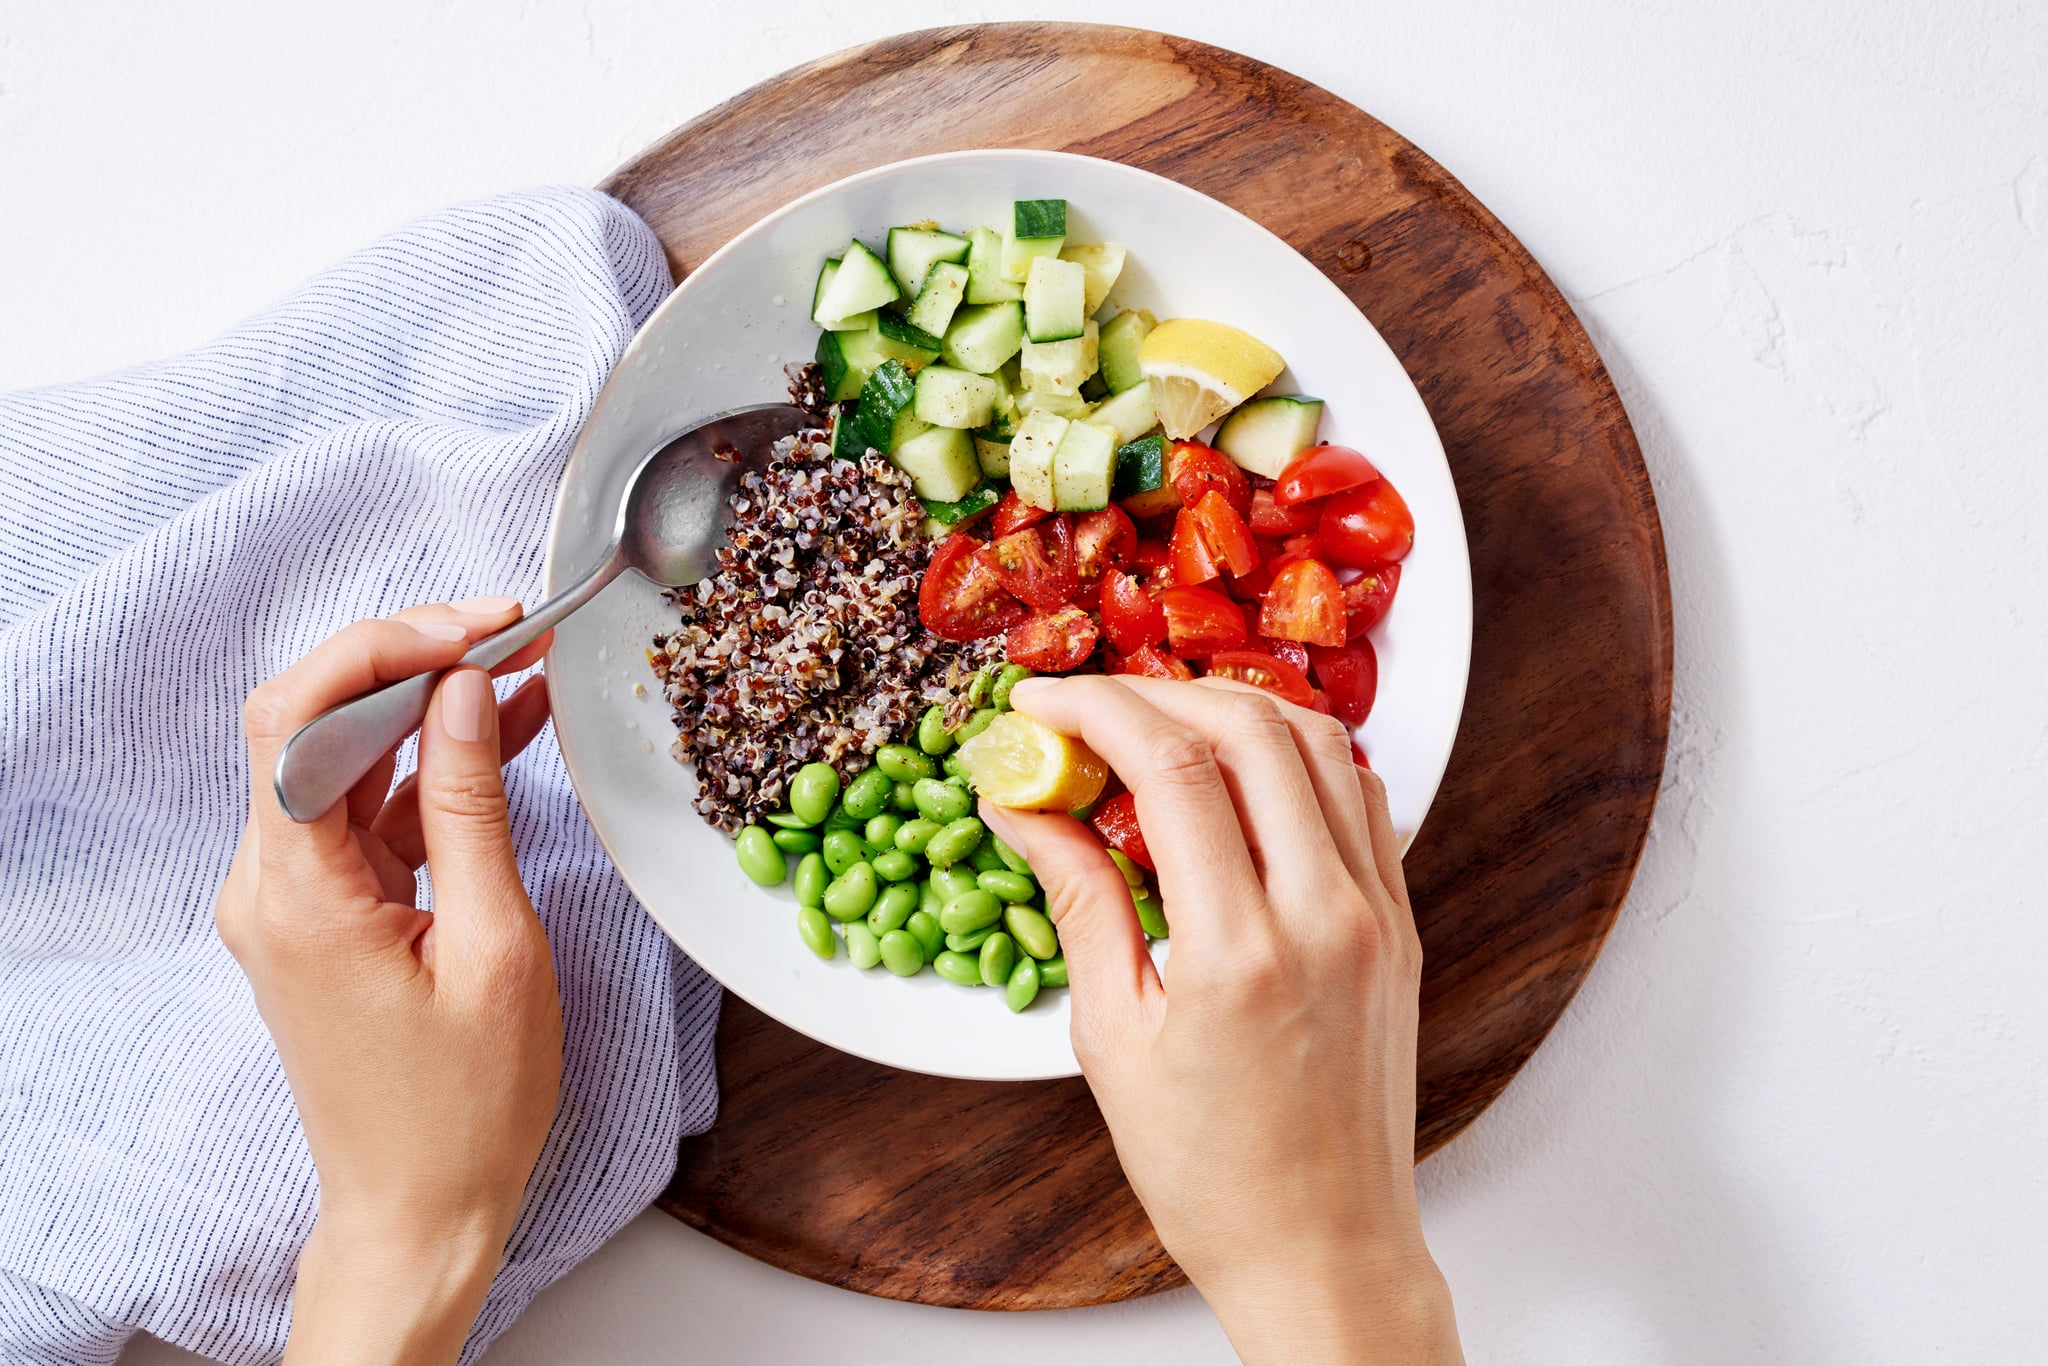 Seconds, Please! This Study Suggests Counting Calories Actually Isn't Effective For Weight Loss